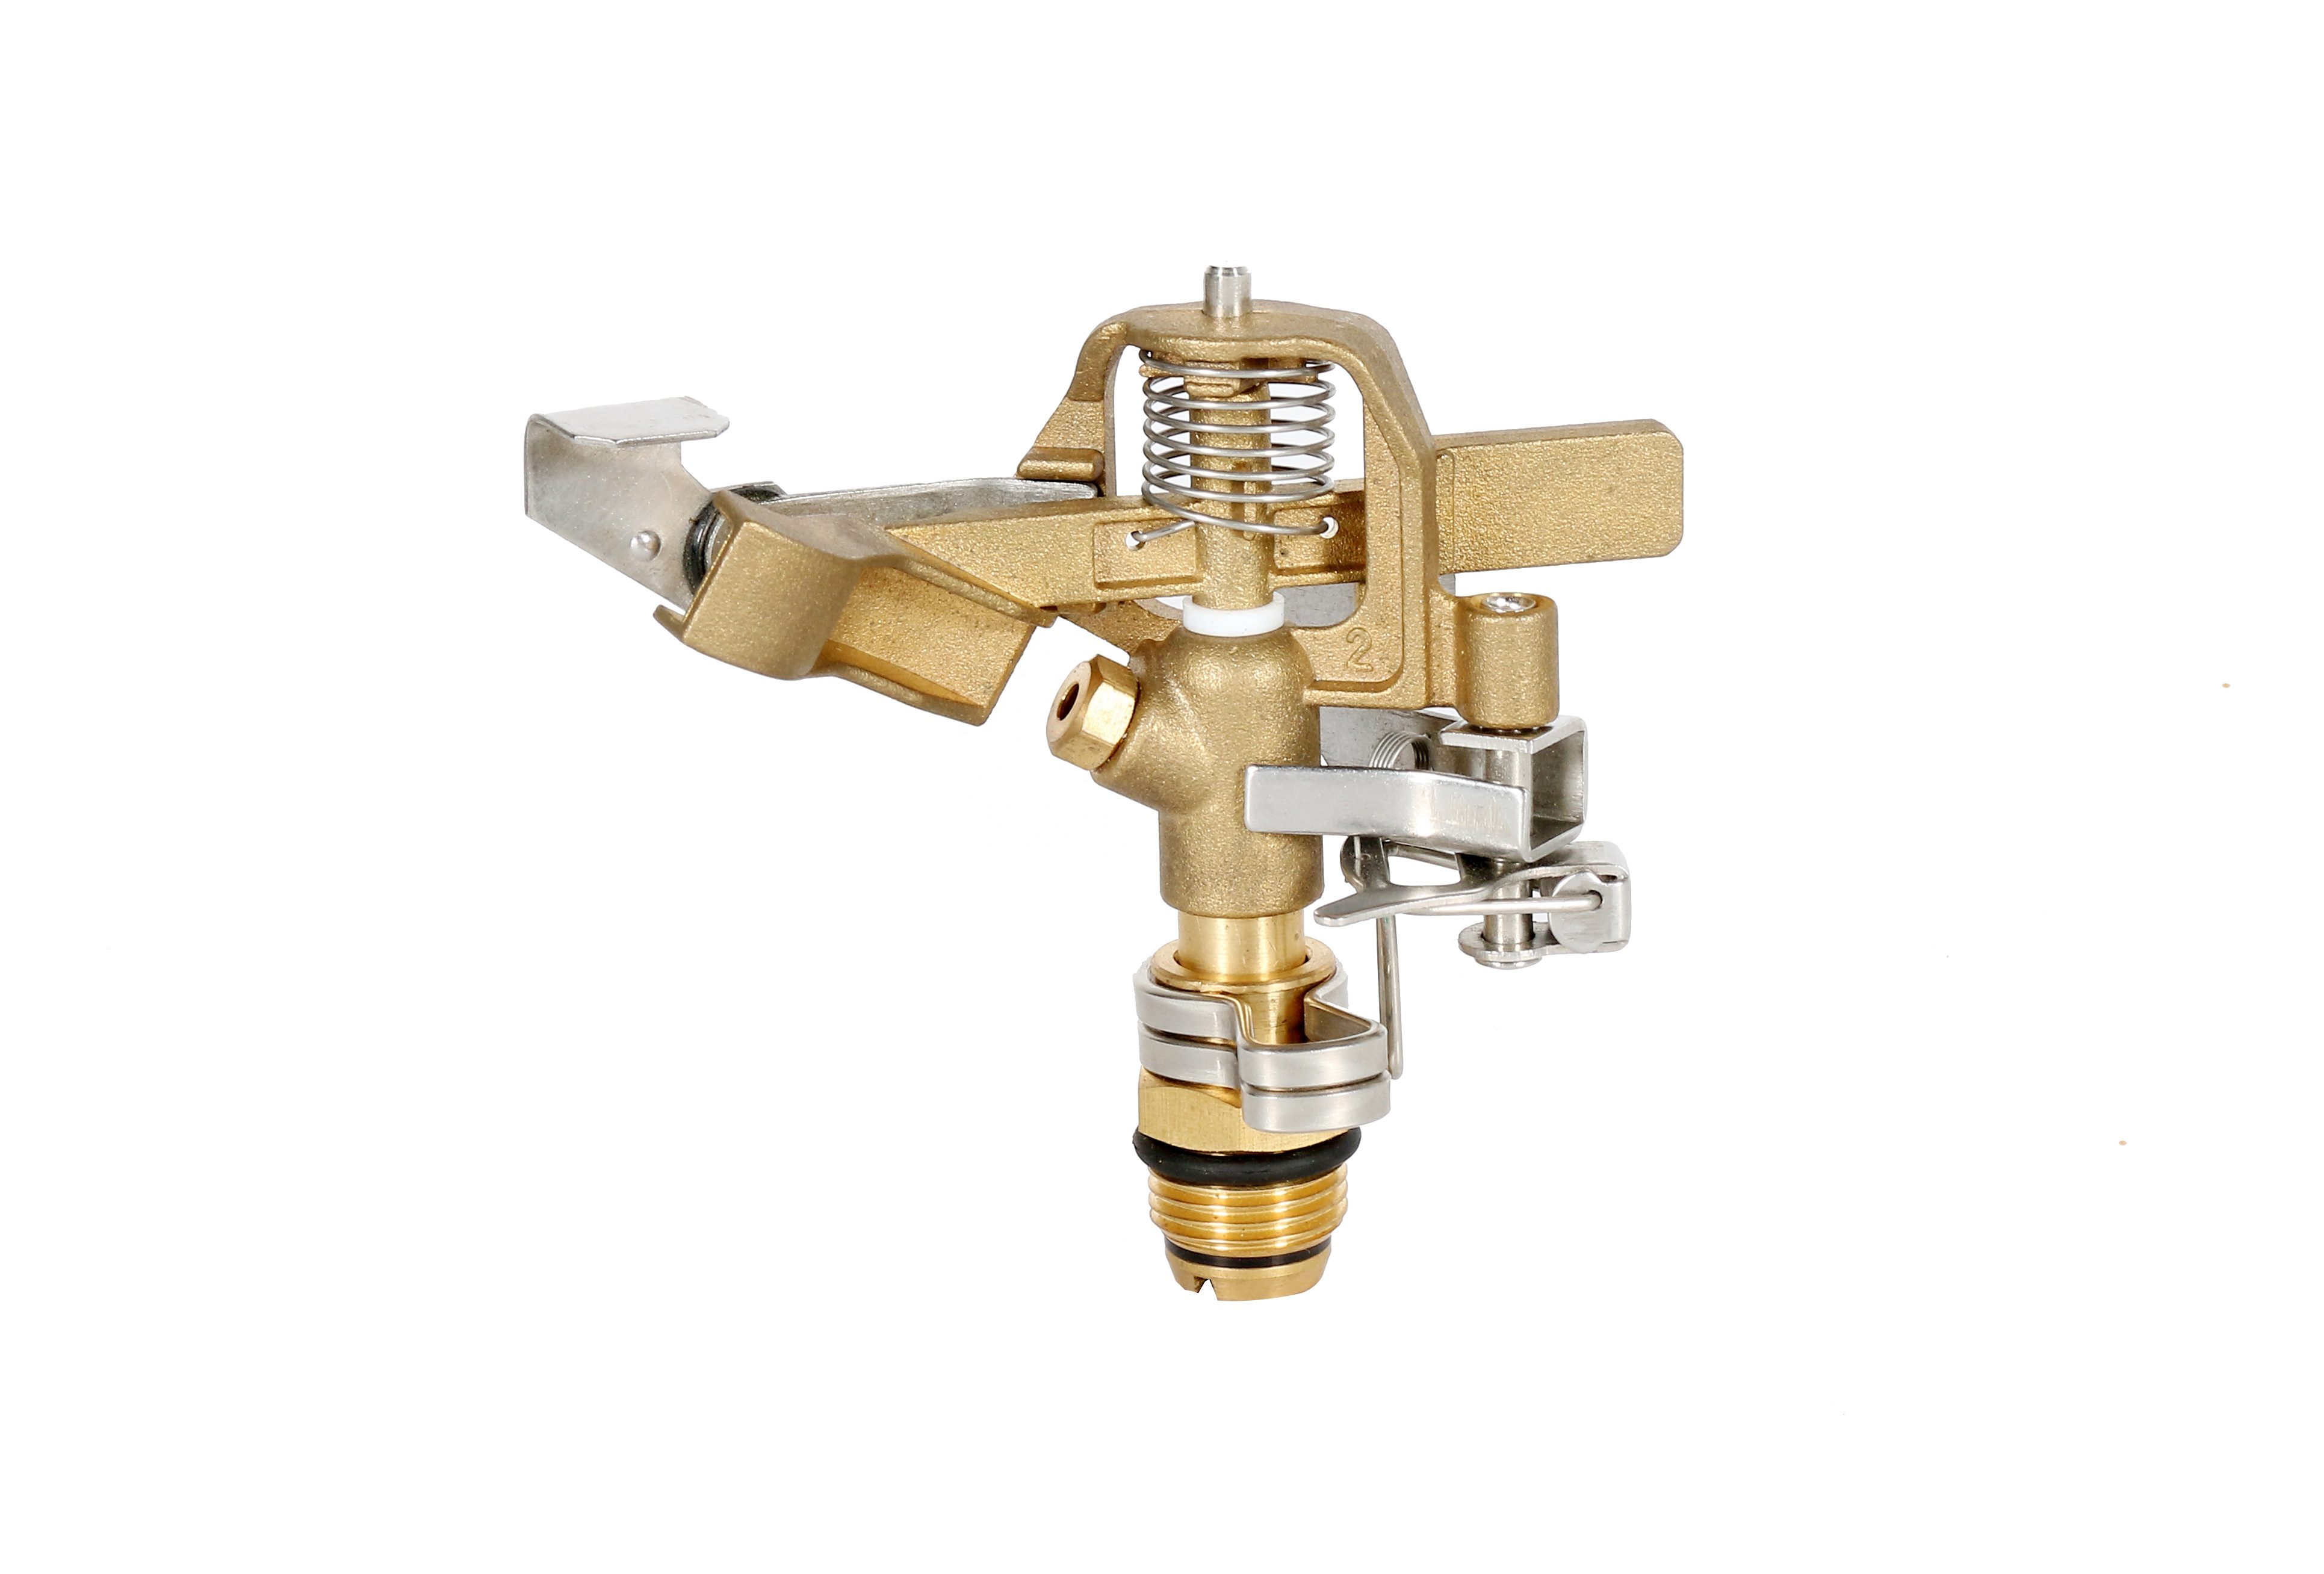 Brass Rotary Sprinkler Head New Product LUMAO Sprinkler Brass Nozzle 1' Inch Adjustable Full and Part Circle Watering Equipment